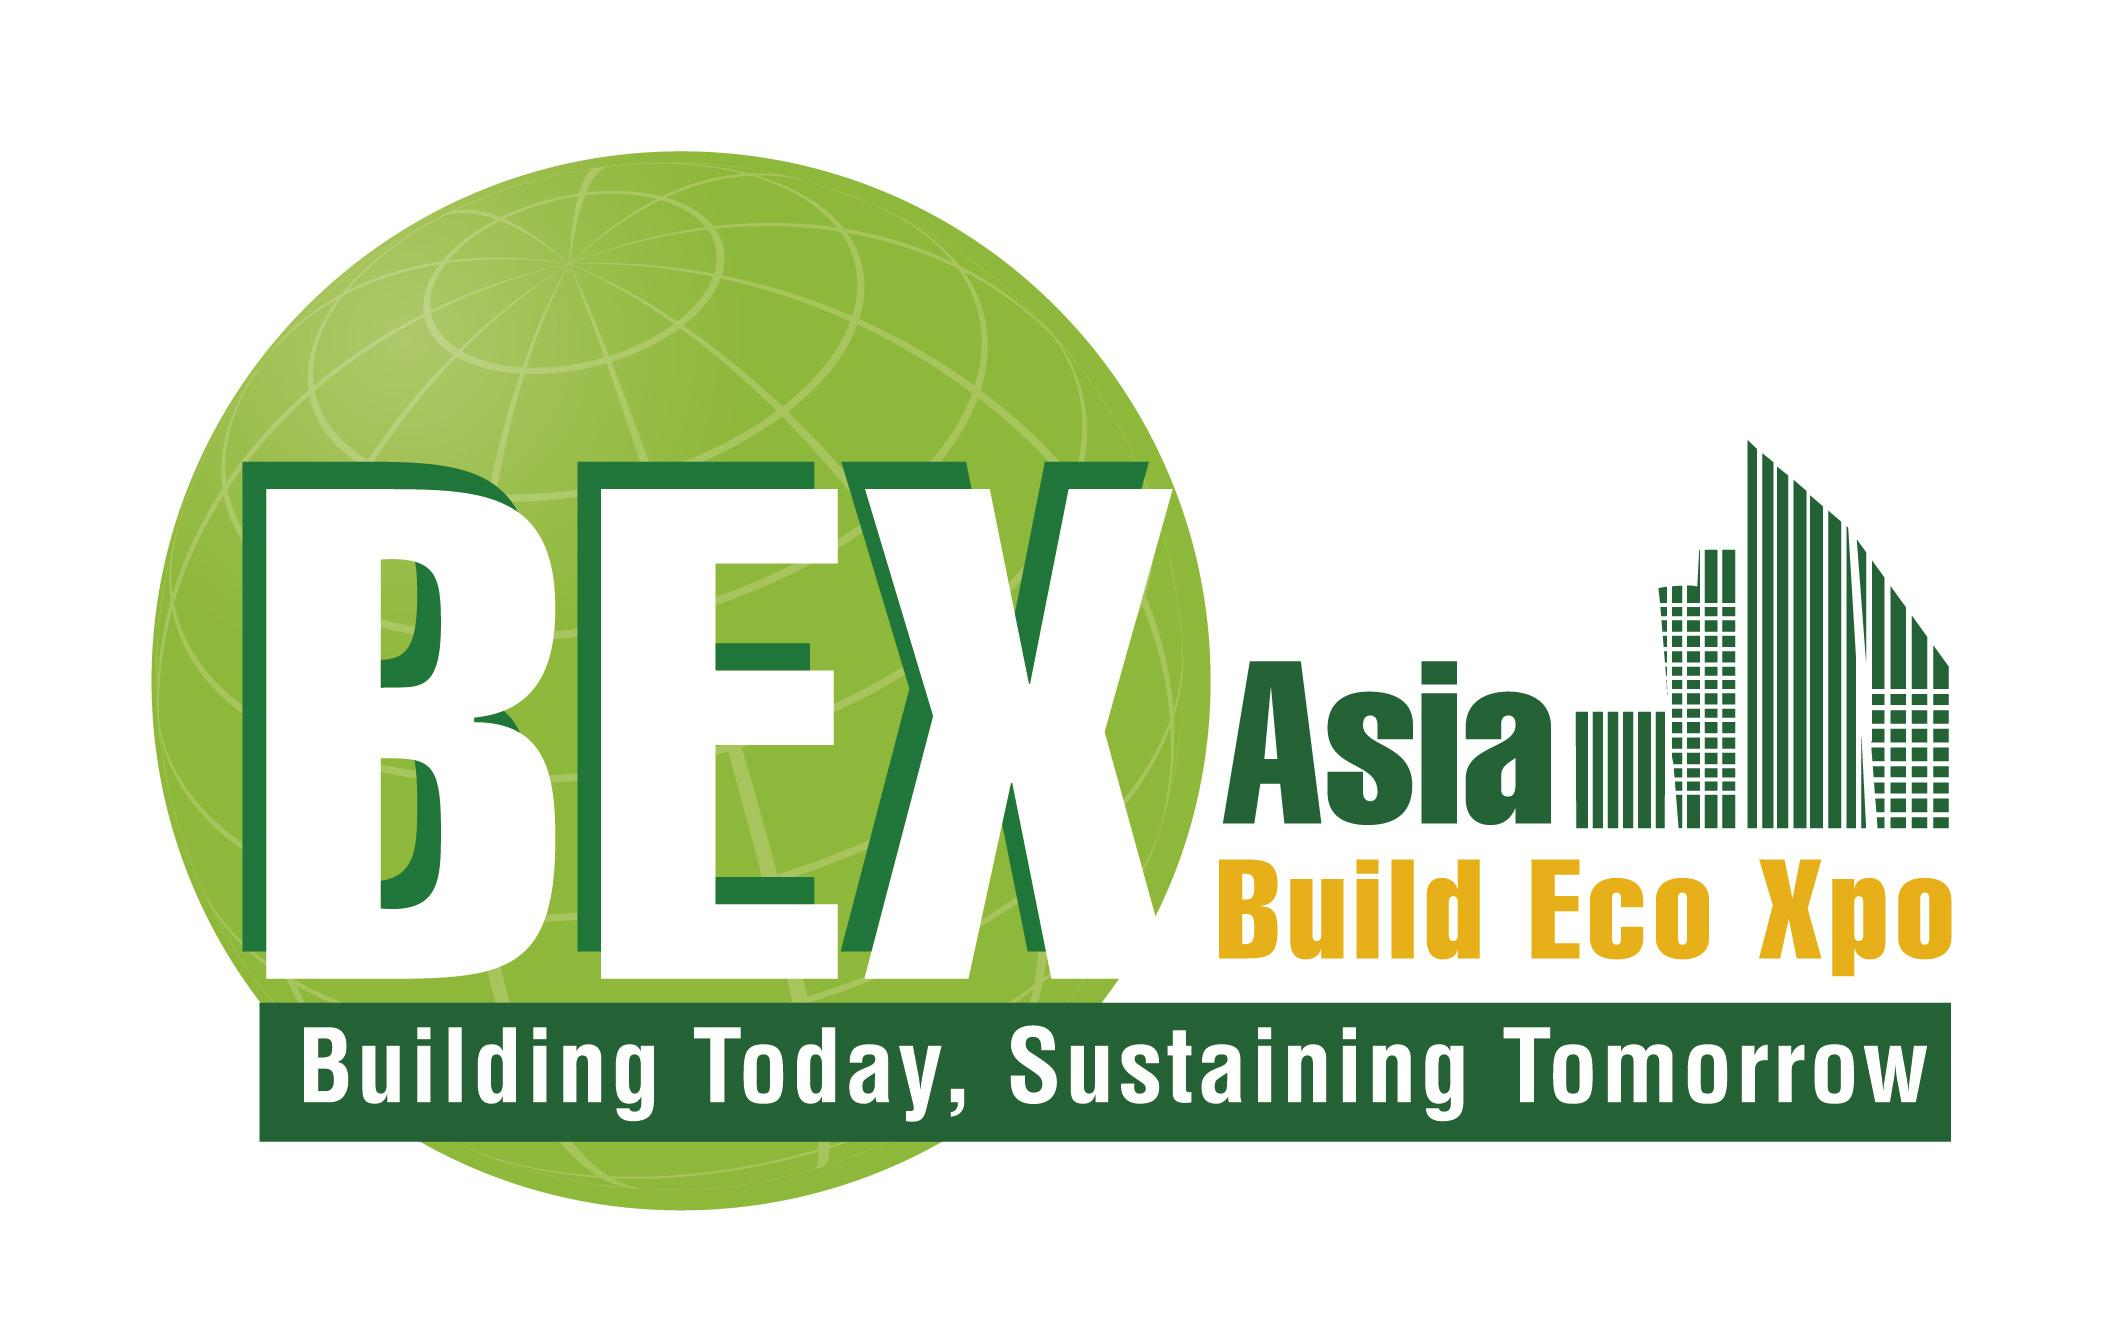 TW-ASIA invited to give talk about PPVC at Bex Asia  Roadshow 2018